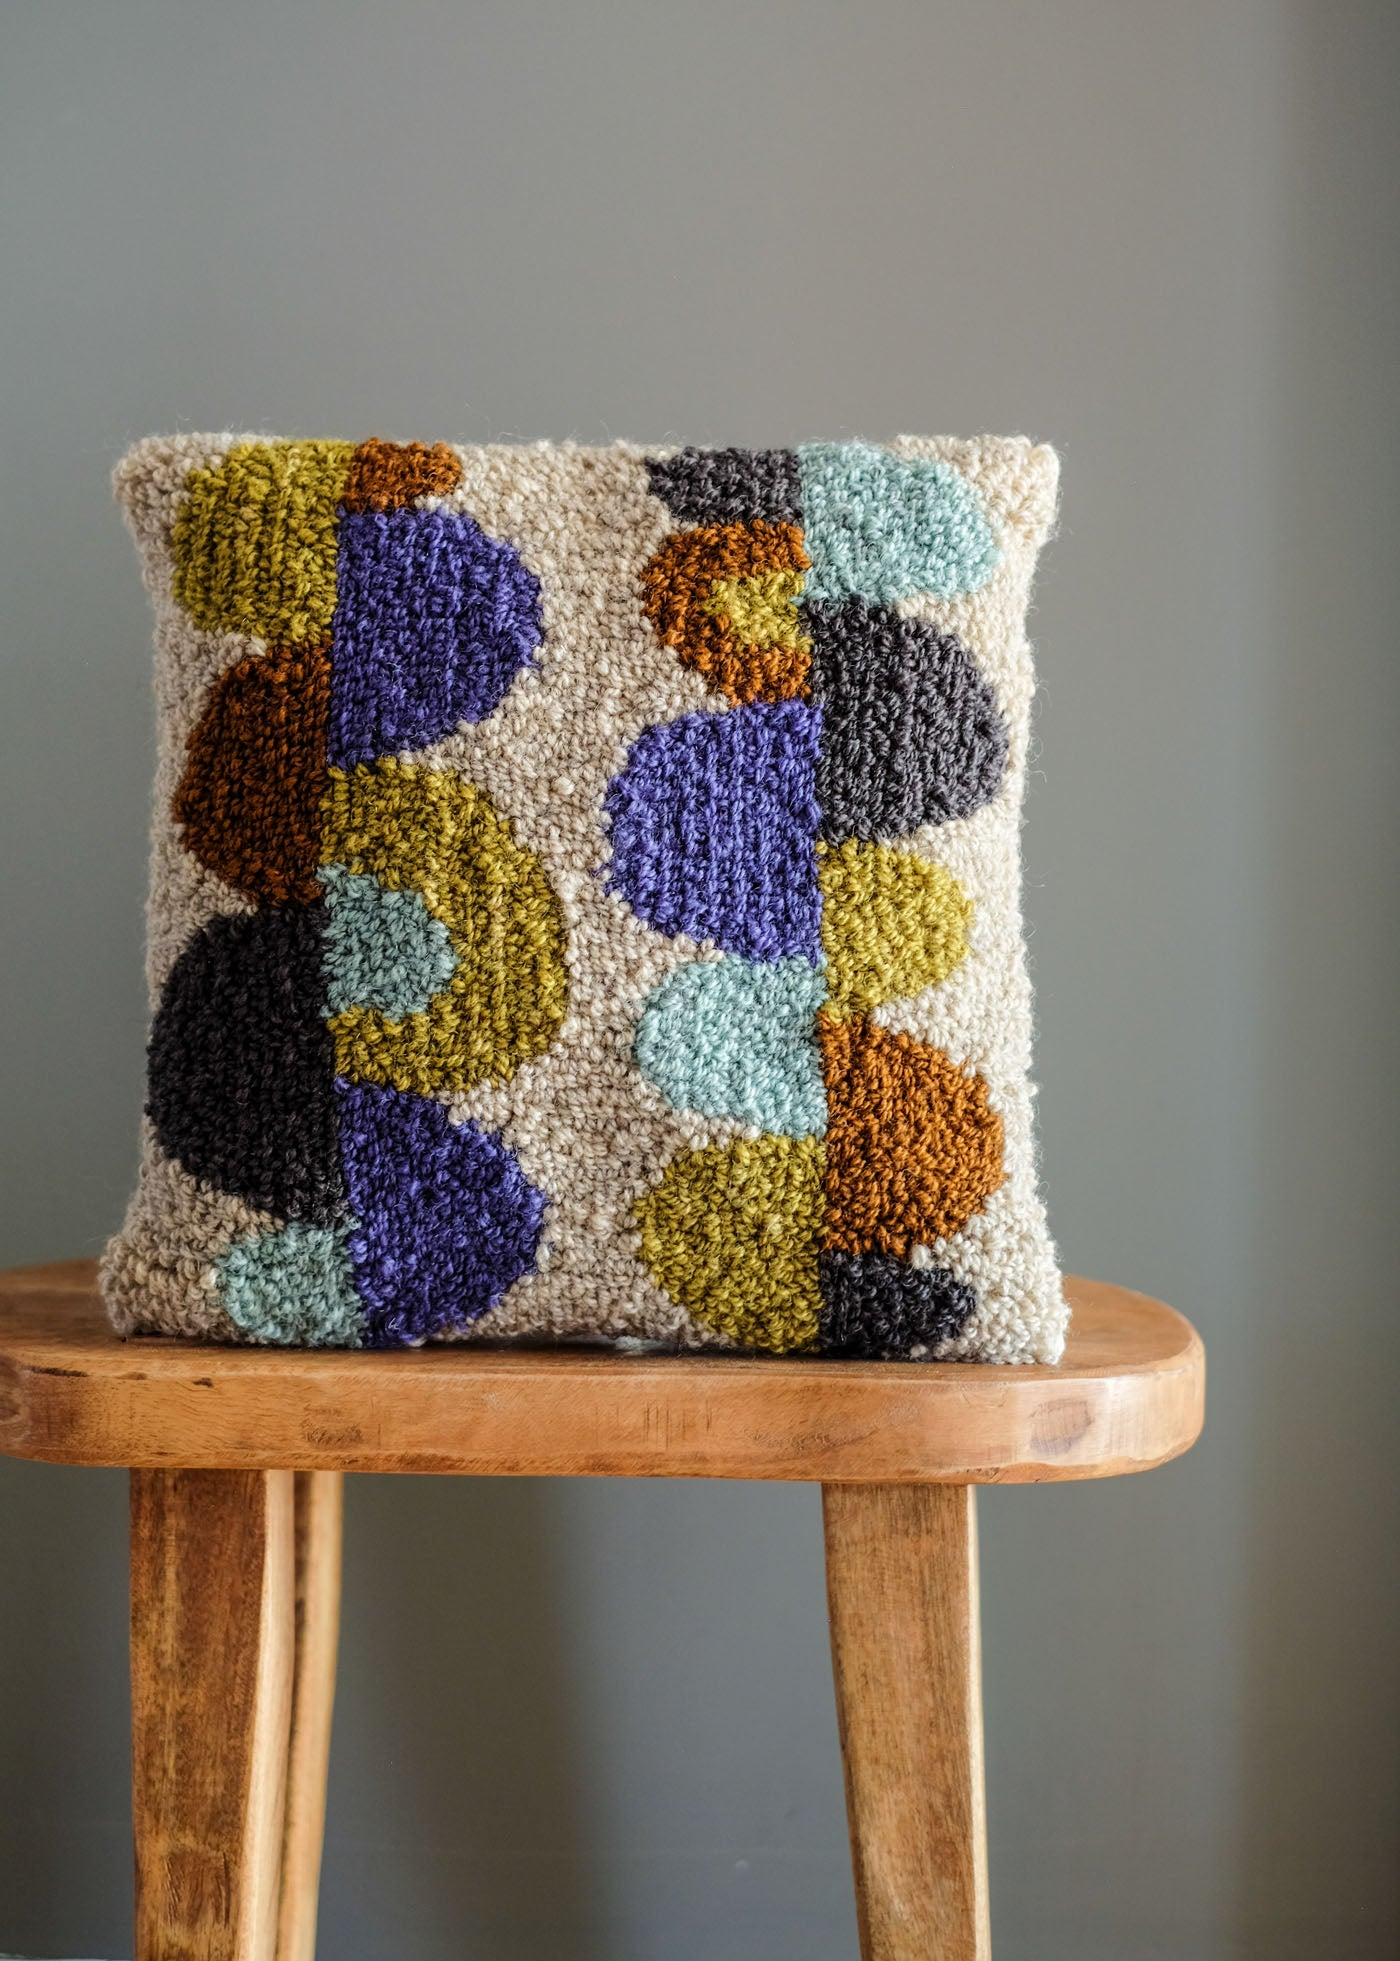 An abstract, modern punch needle pillow in hues of copper, grey, olive, pale turquoise and lavender.